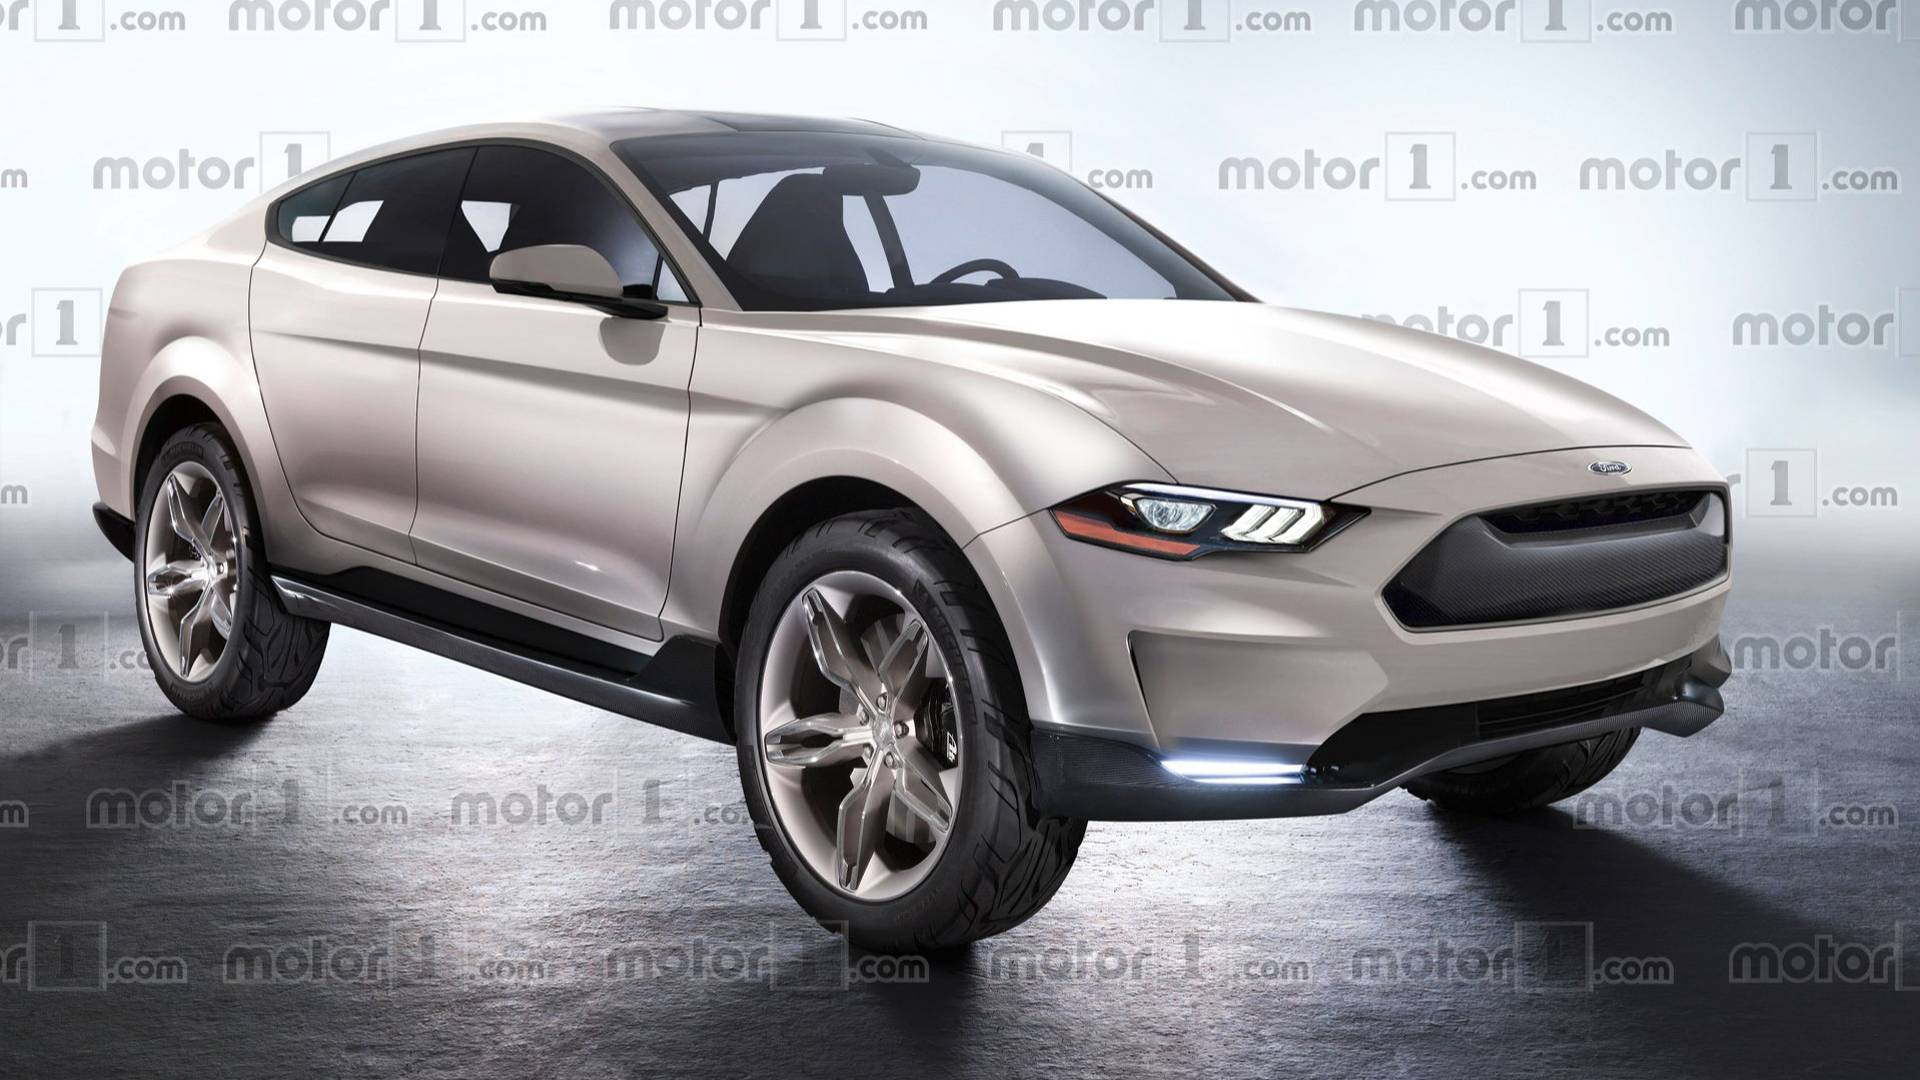 suvs ford electric mustang suv might what news s based look like this render is